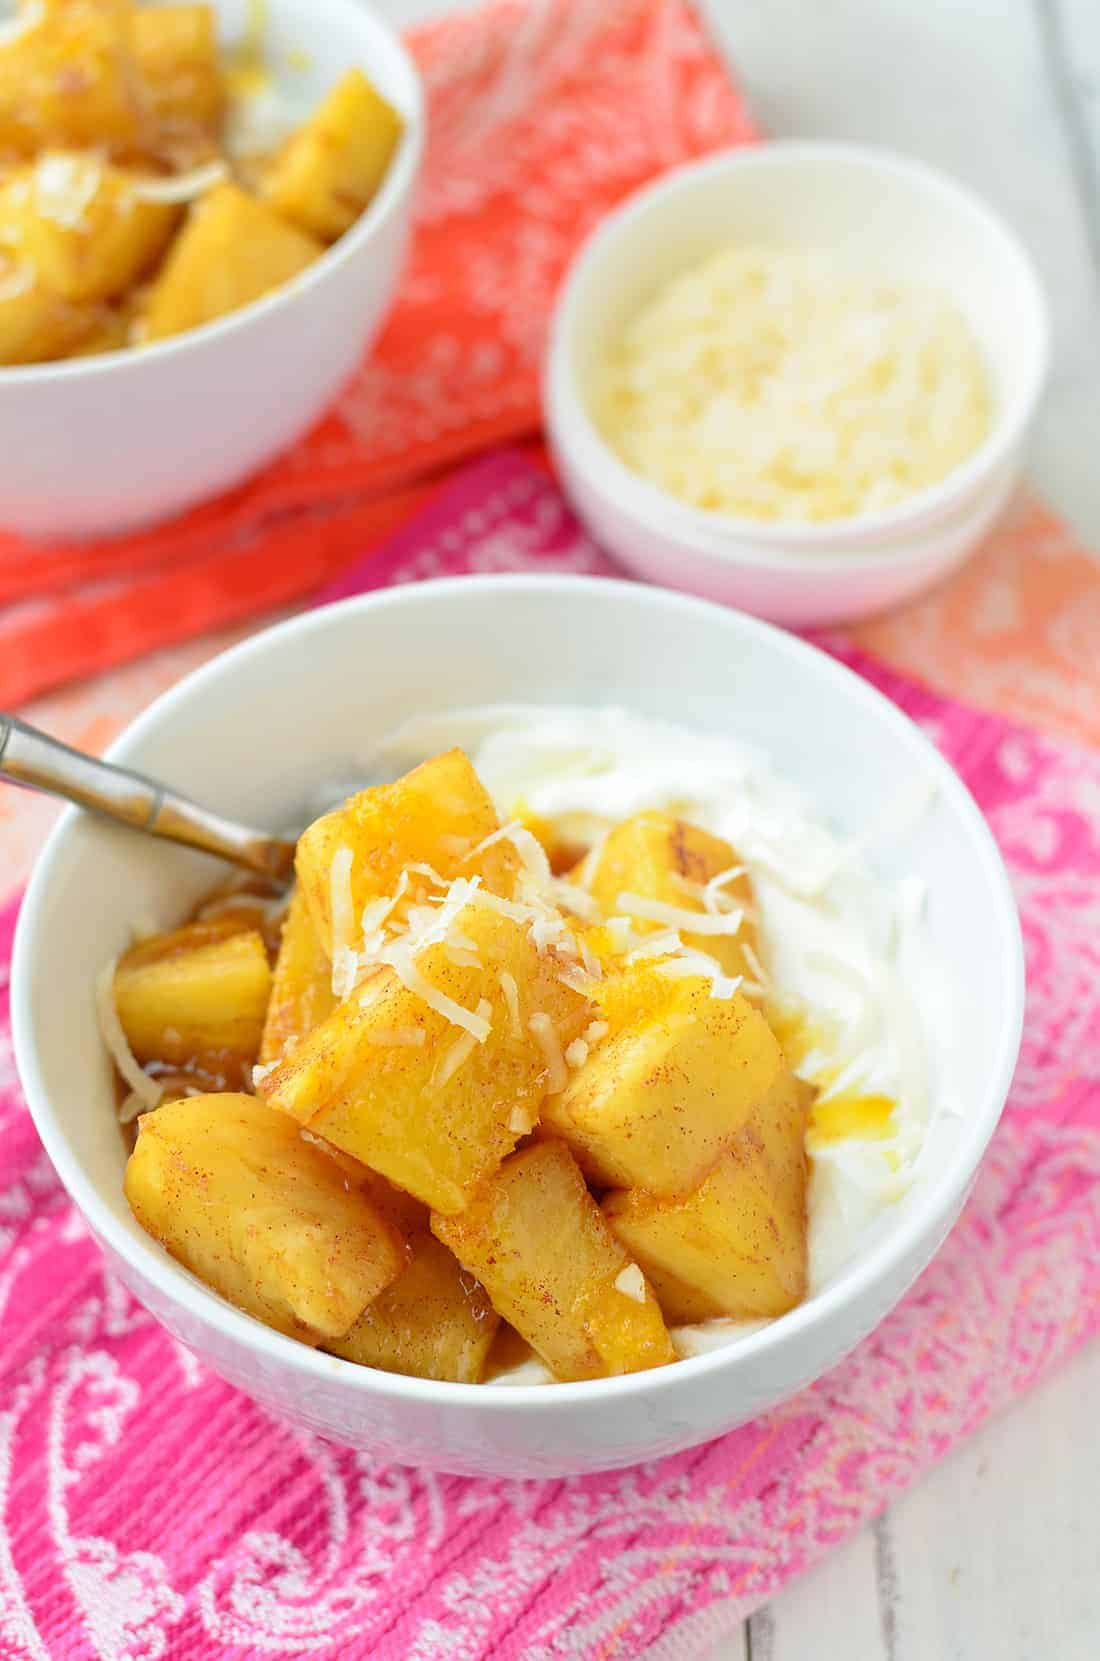 Caramelized Pineapple Yogurt Bowls! You've gotta try these, so simple just 6 ingredients. Caramelized Coconut Pineapple over creamy yogurt. #vegetarian #healthy | www.delishknowledge.com